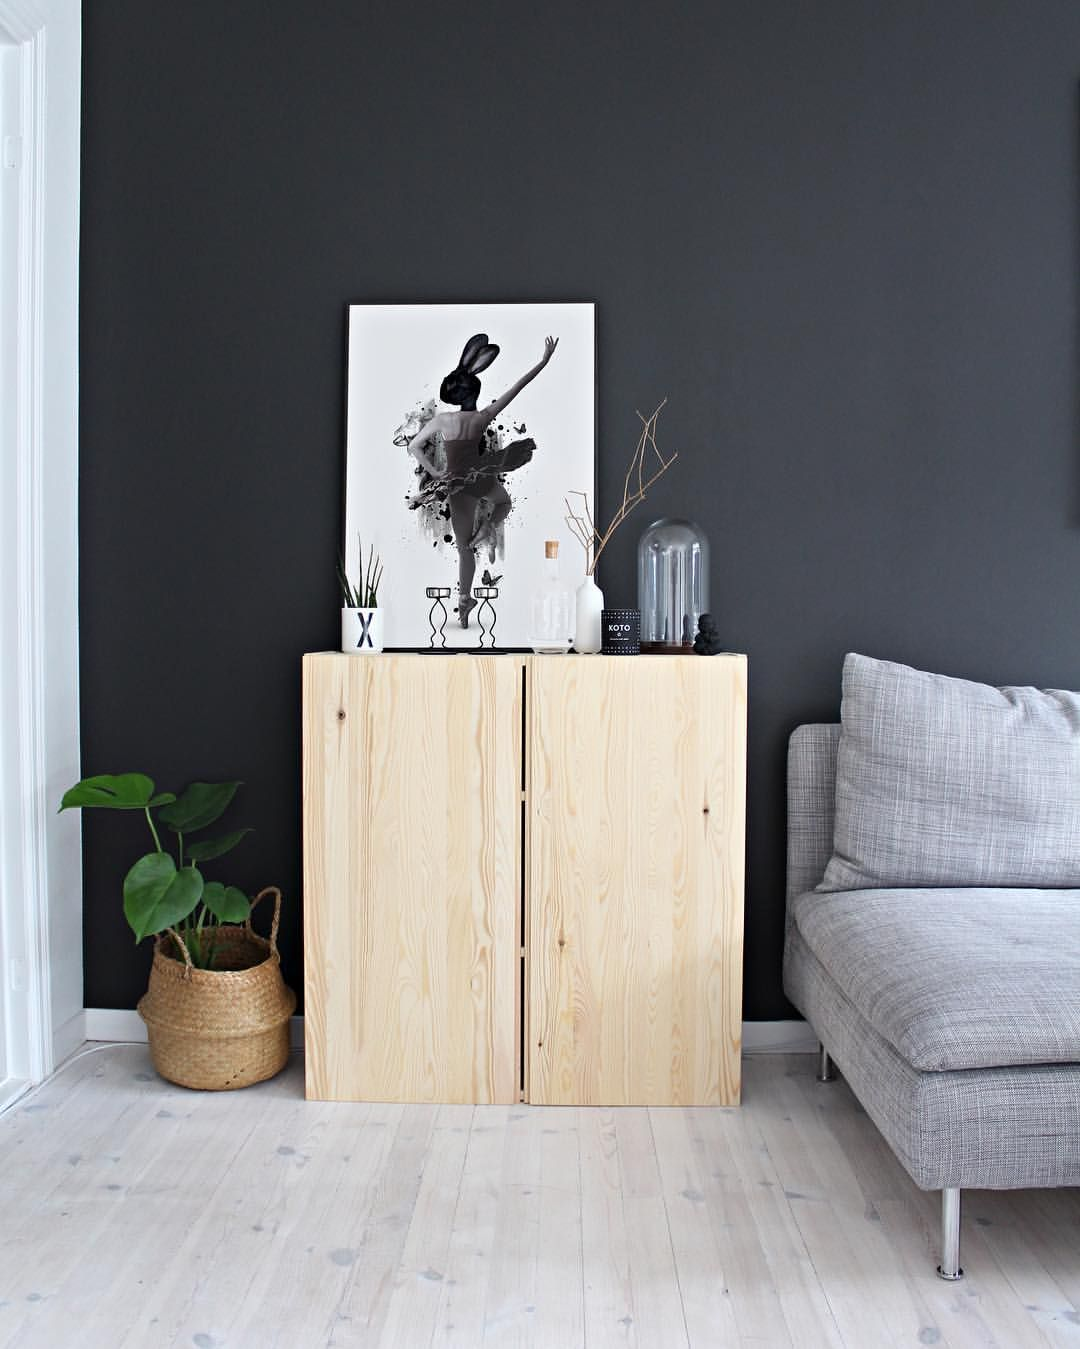 Prima Ballerina./ We love this cute and beautiful artprint! Match it with Marble Feather and Teardrop, play with different sizes and make yourself a fun gallery wall🙃 or just put her on full display on a shelf or cabinet like I did☺️ We recommend using IKEA Strömby frames for inexpensive, thin glassframes👌🏼